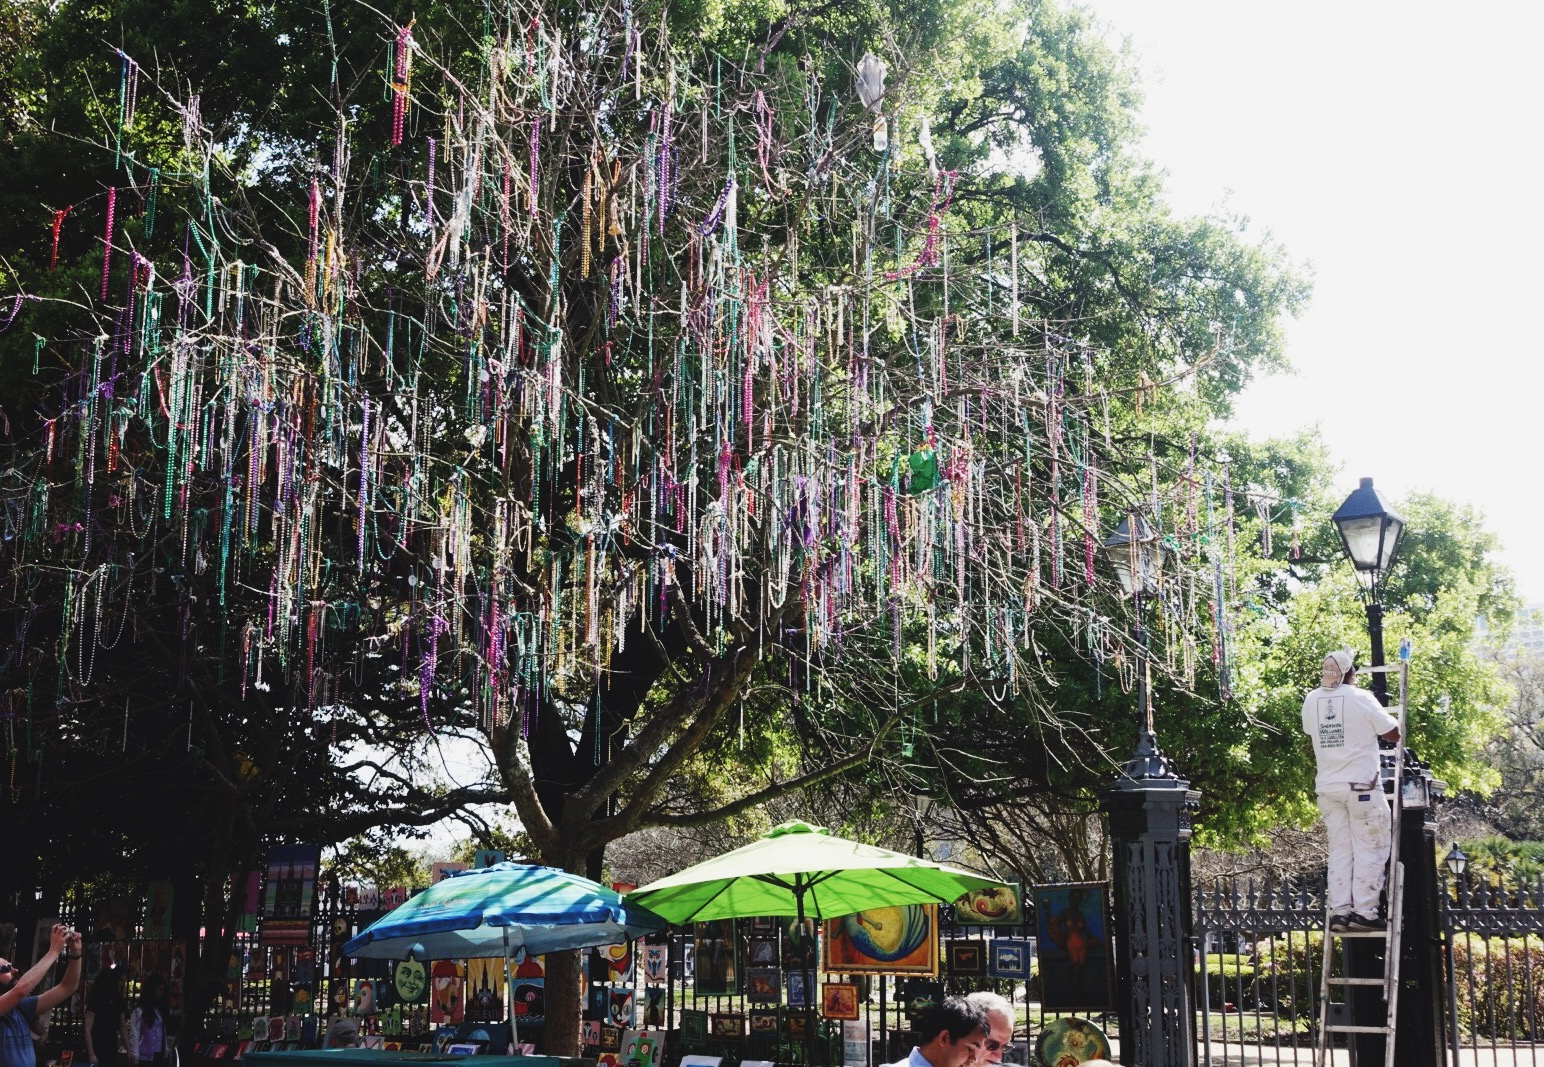 In New Orleans, even the trees wear beads.